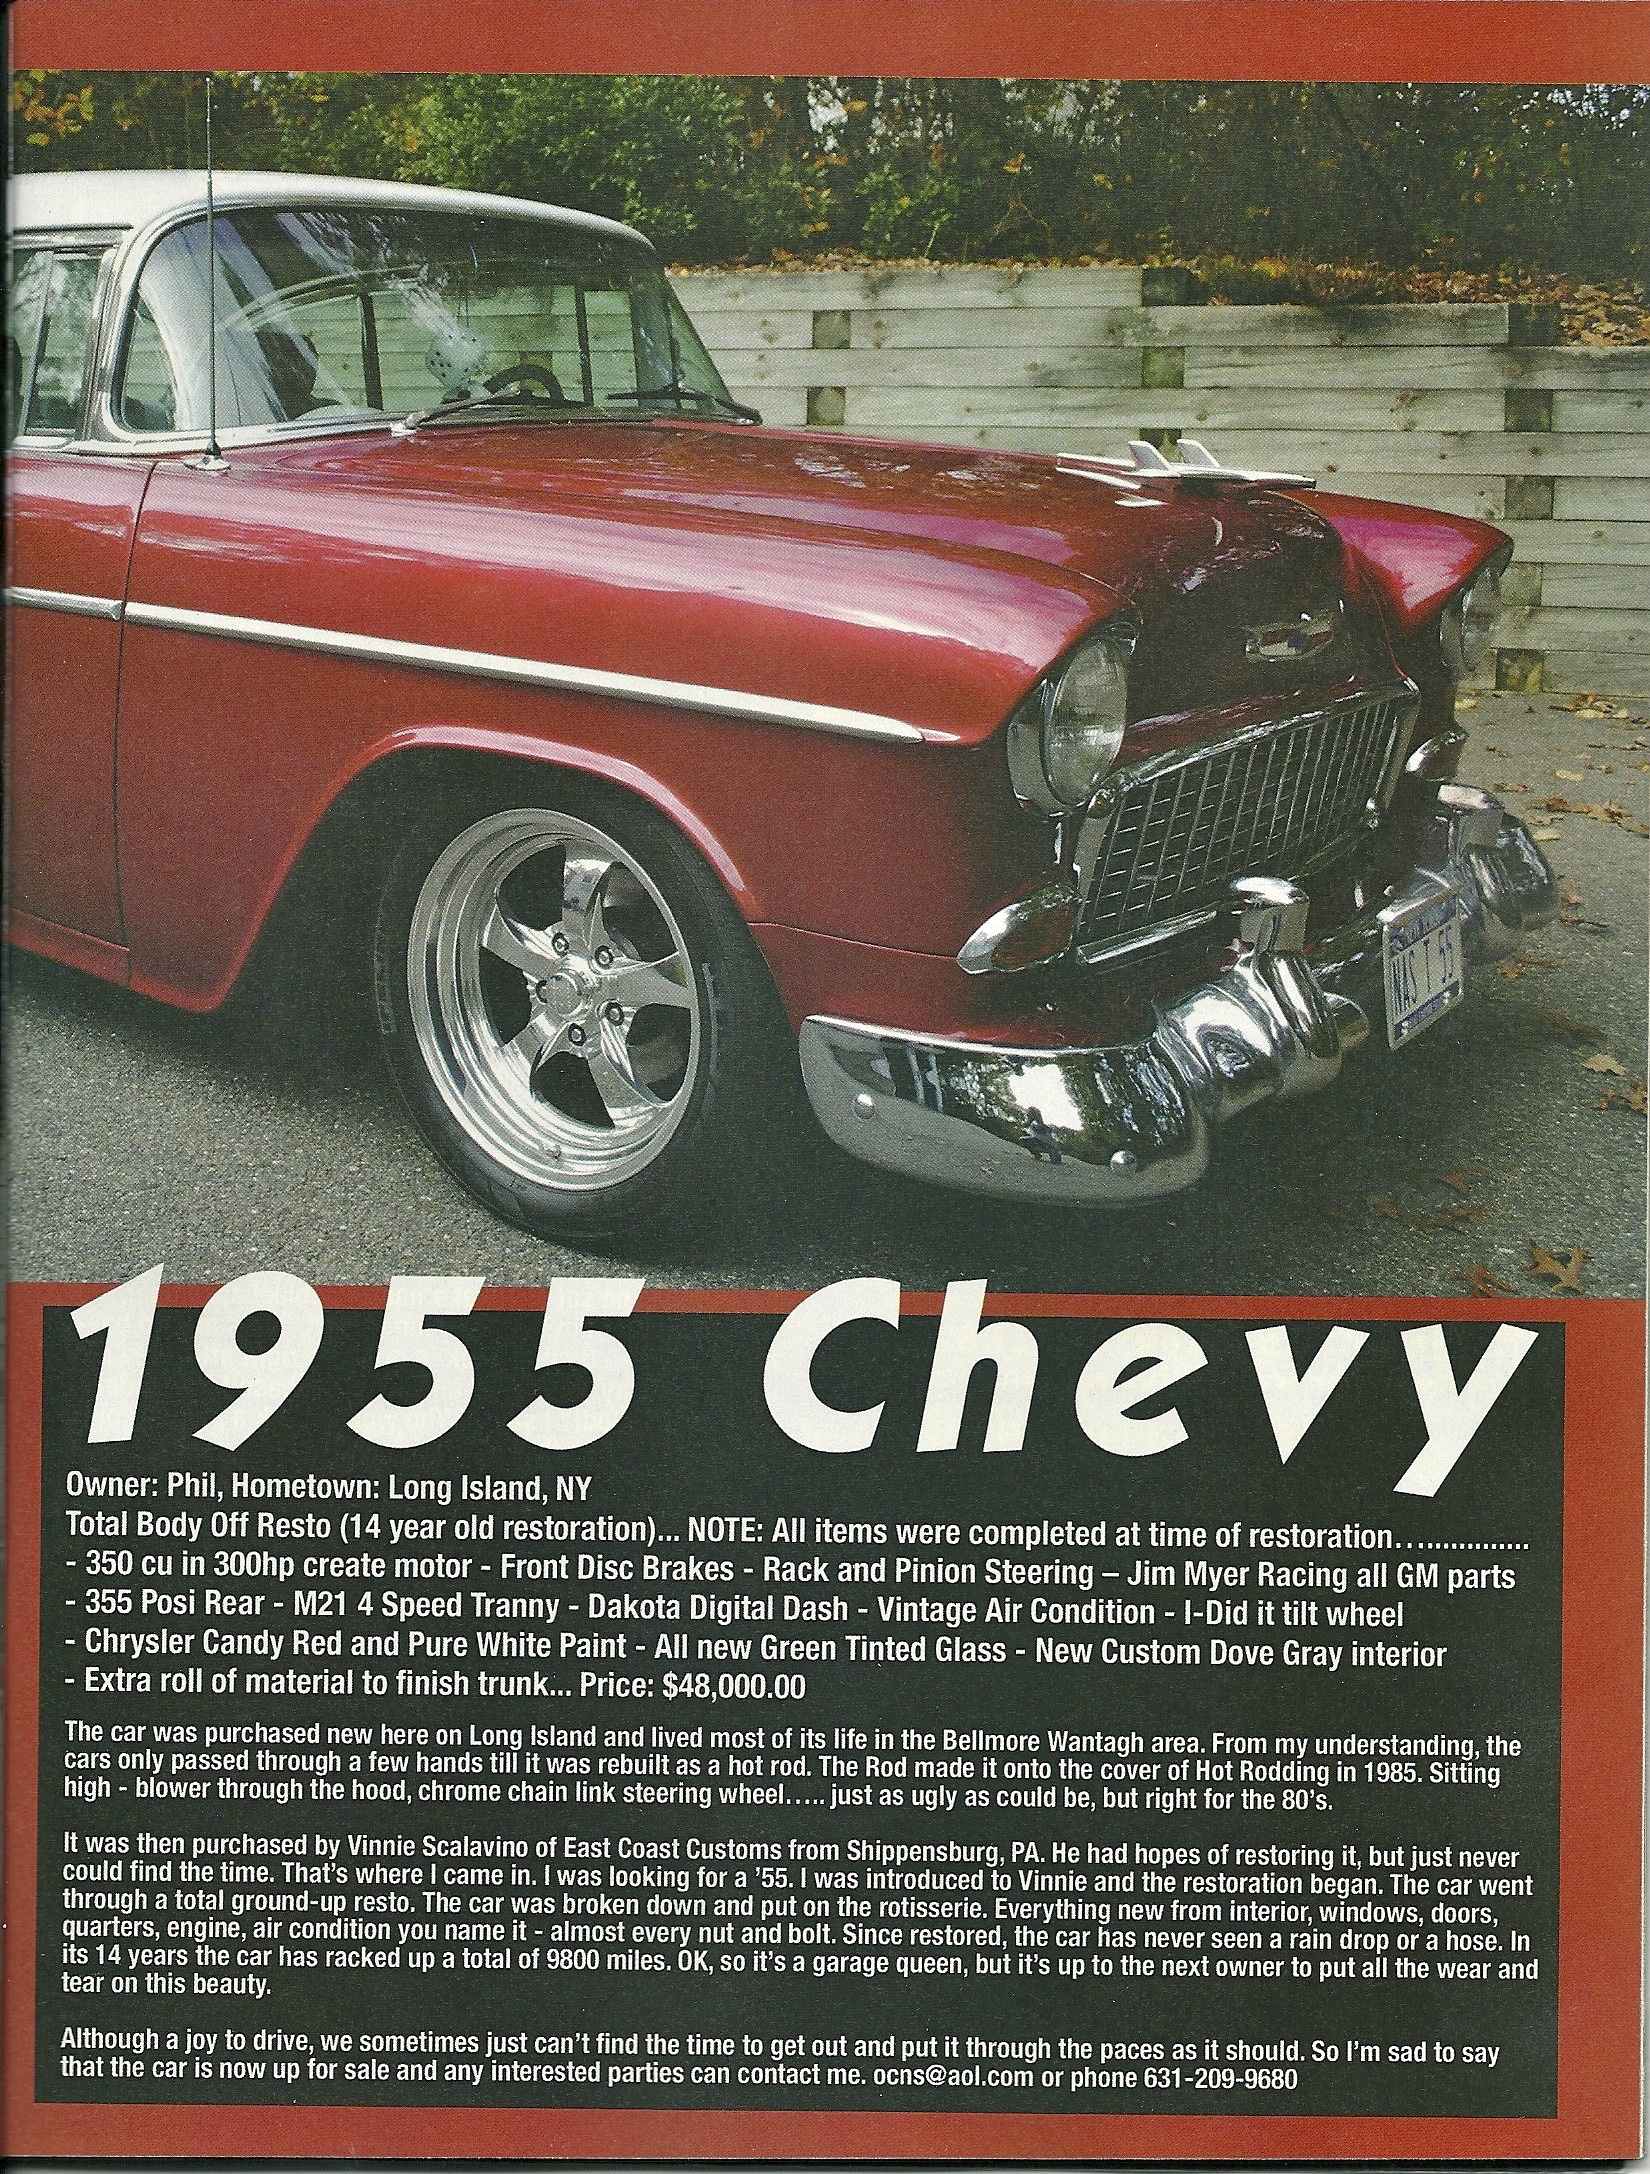 Gallery Carlisle Customs Classics 1966 Chevy Bel Air For Sale 1955